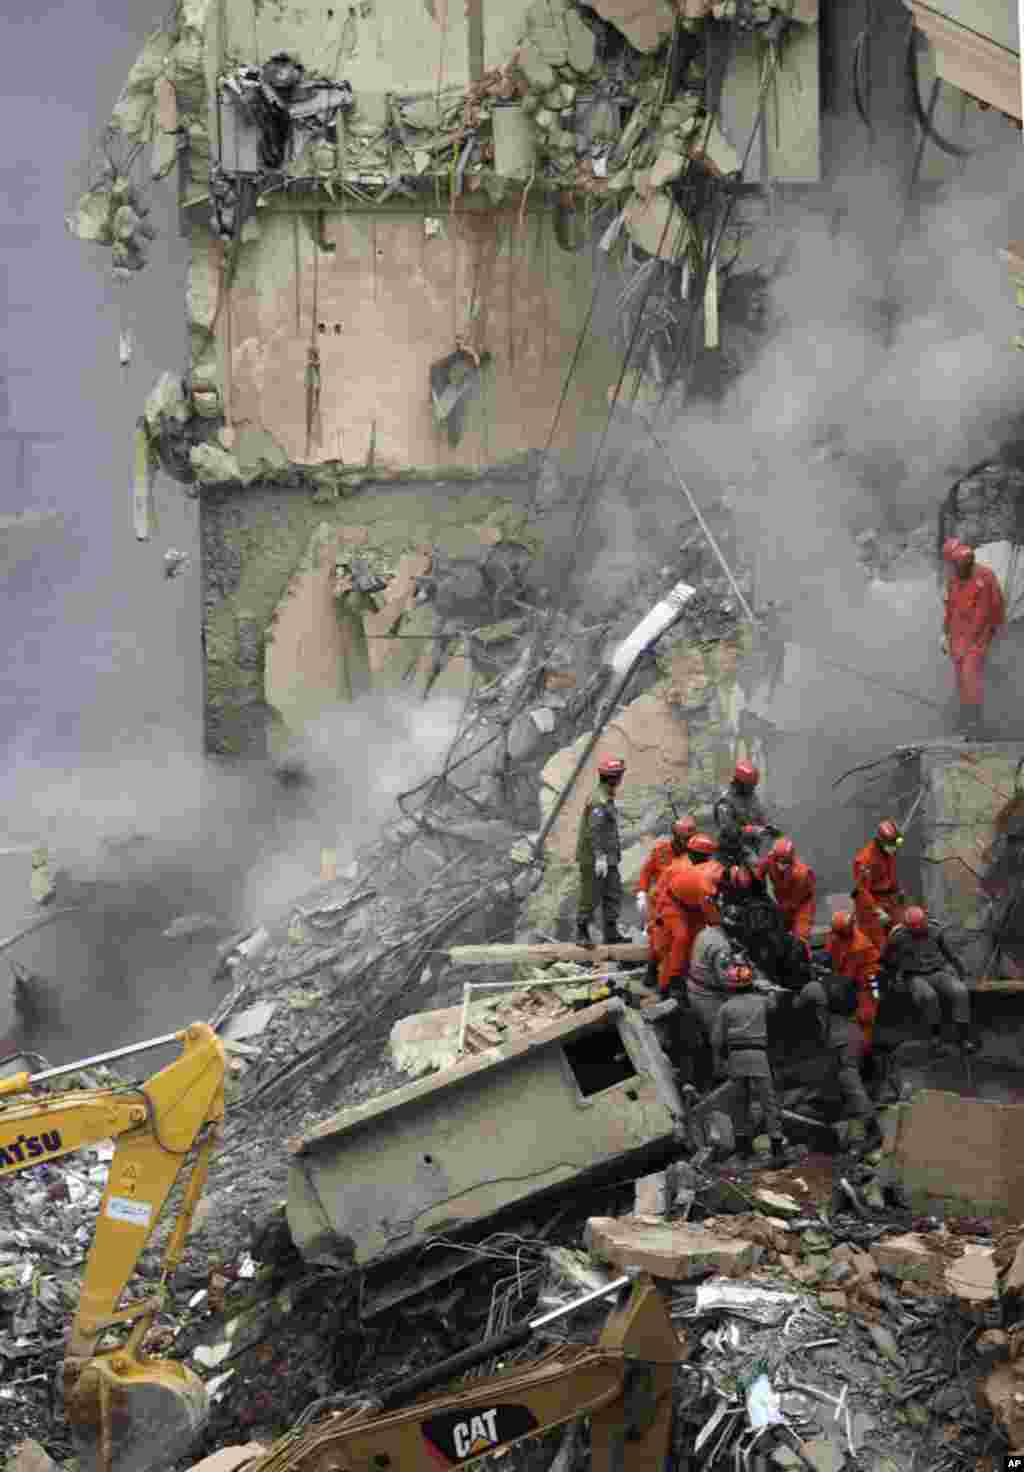 Firefighters carry the body of a victim among the debris of a collapsed building in Rio de Janeiro. January 26, 2012. (Reuters)